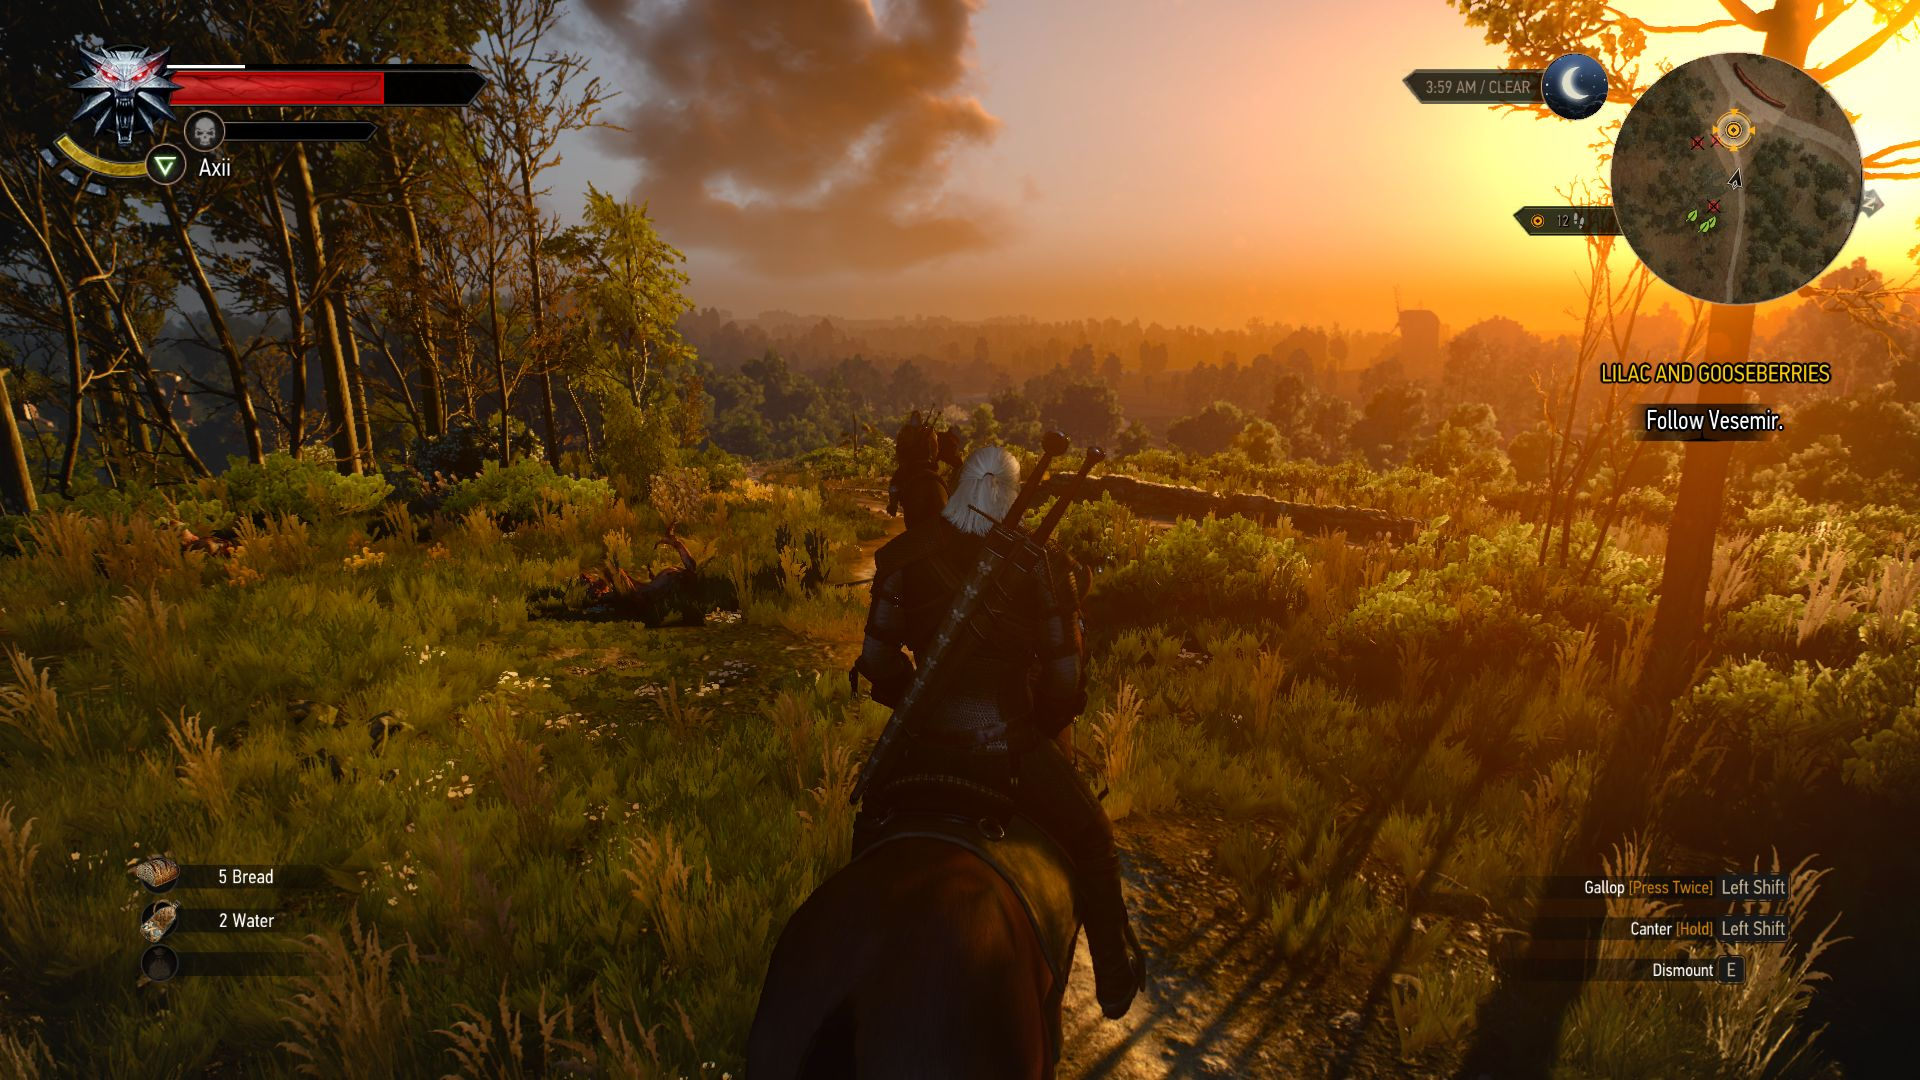 The Witcher 3 Notebook Benchmarks - Notebookcheck.com Tests